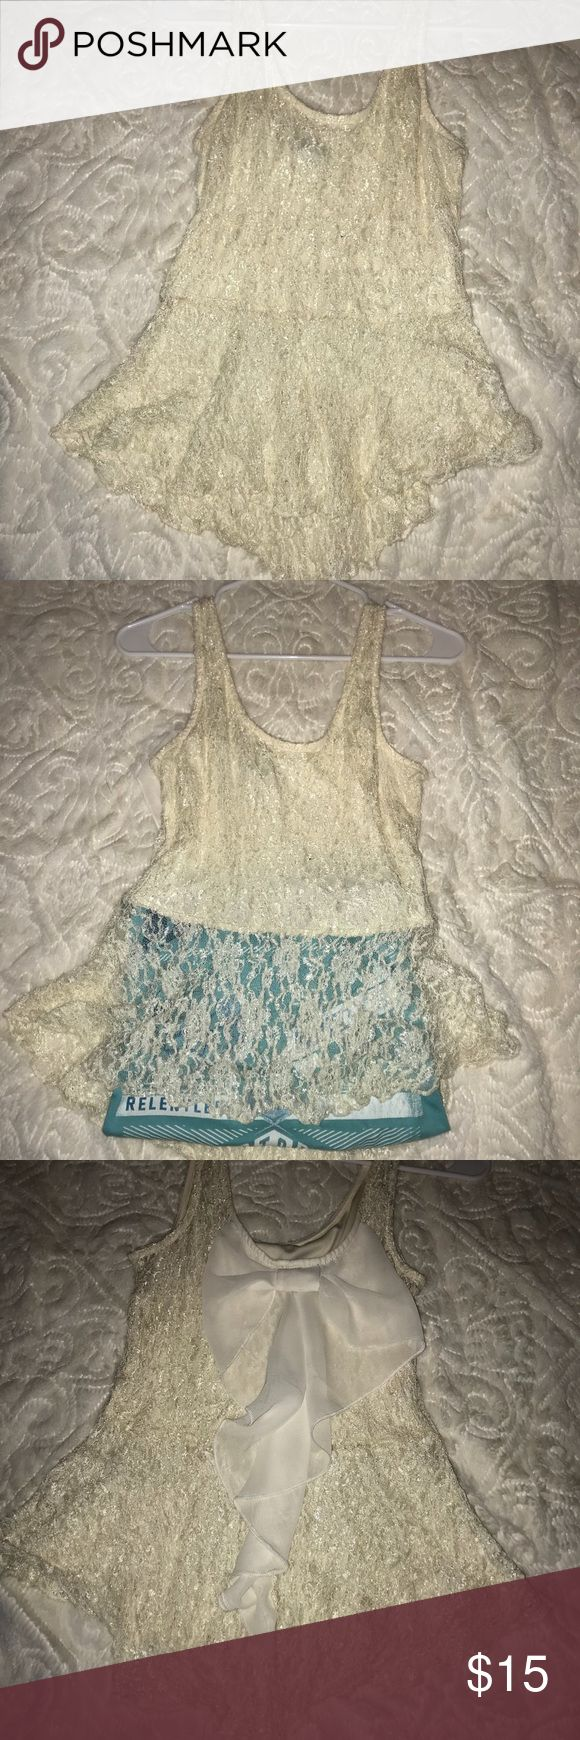 Shimmy cream gold tank Shimmy cream gold tank from rue 21 with bow detail on back. Is see through below ribs (not acutely blue underneath just put a shirt there for contrast 😂)  **TAG SAYS LARGE BUT DEFINITELY FITS MORE SNUG LIKE A MEDIUM** Rue 21 Tops